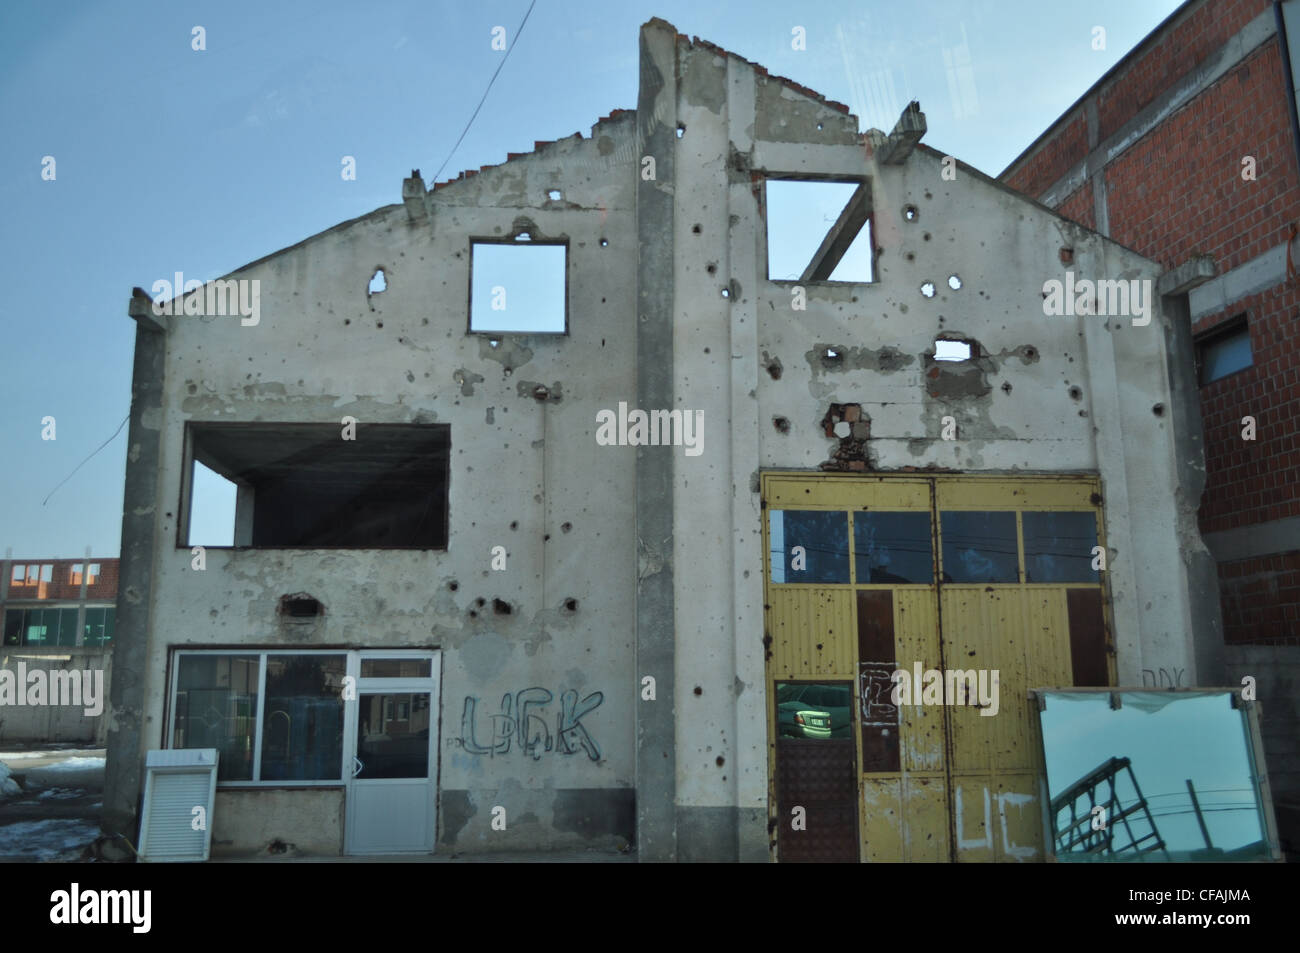 Kosovo, bullet, guns, war, Uck - Stock Image